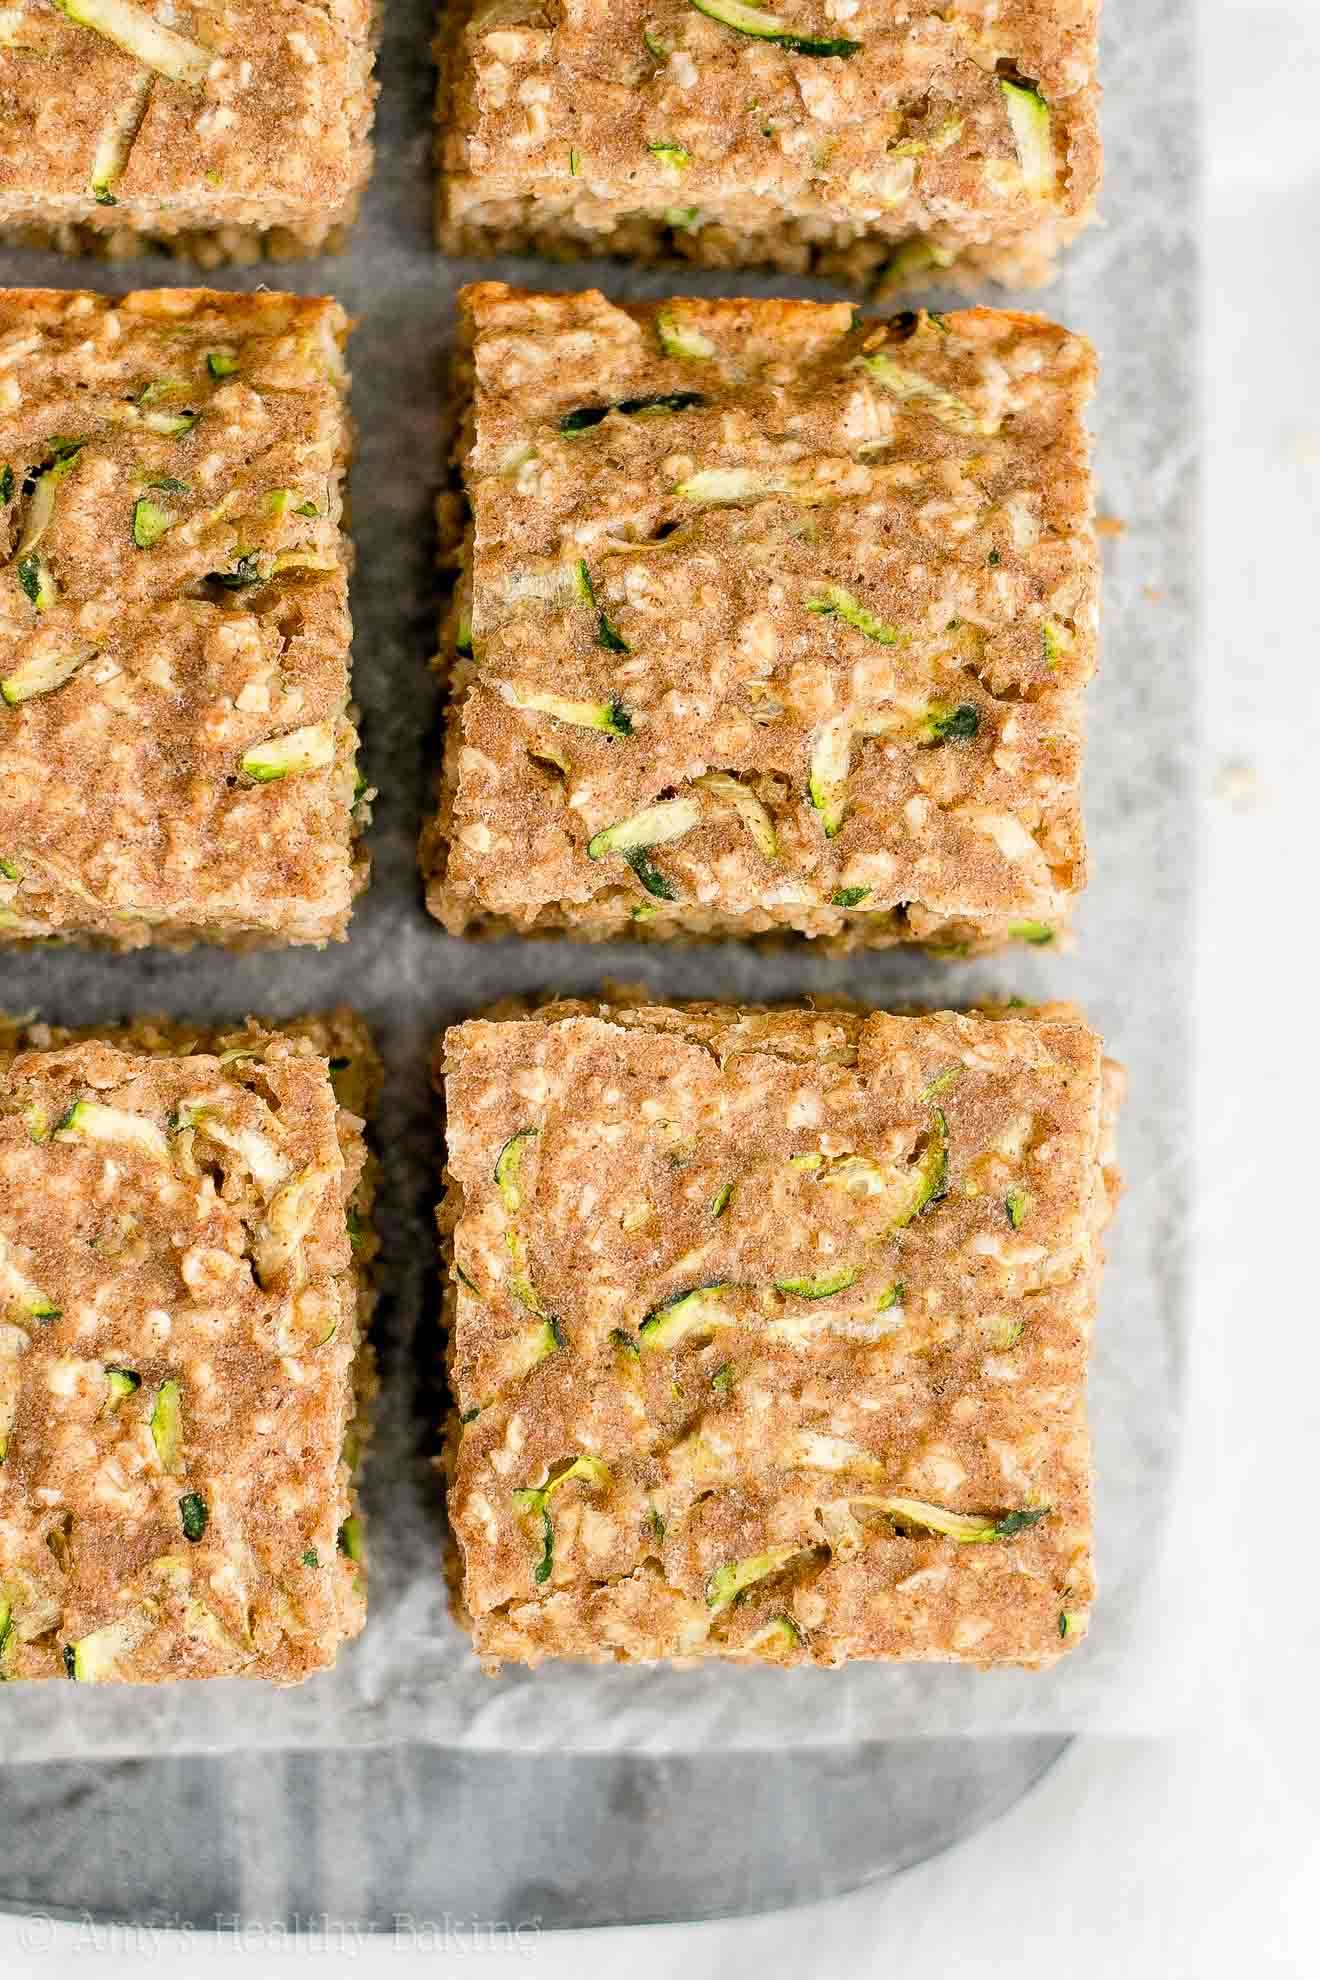 Easy Low Calorie Healthy Gluten Free Zucchini Oatmeal Snack Cake